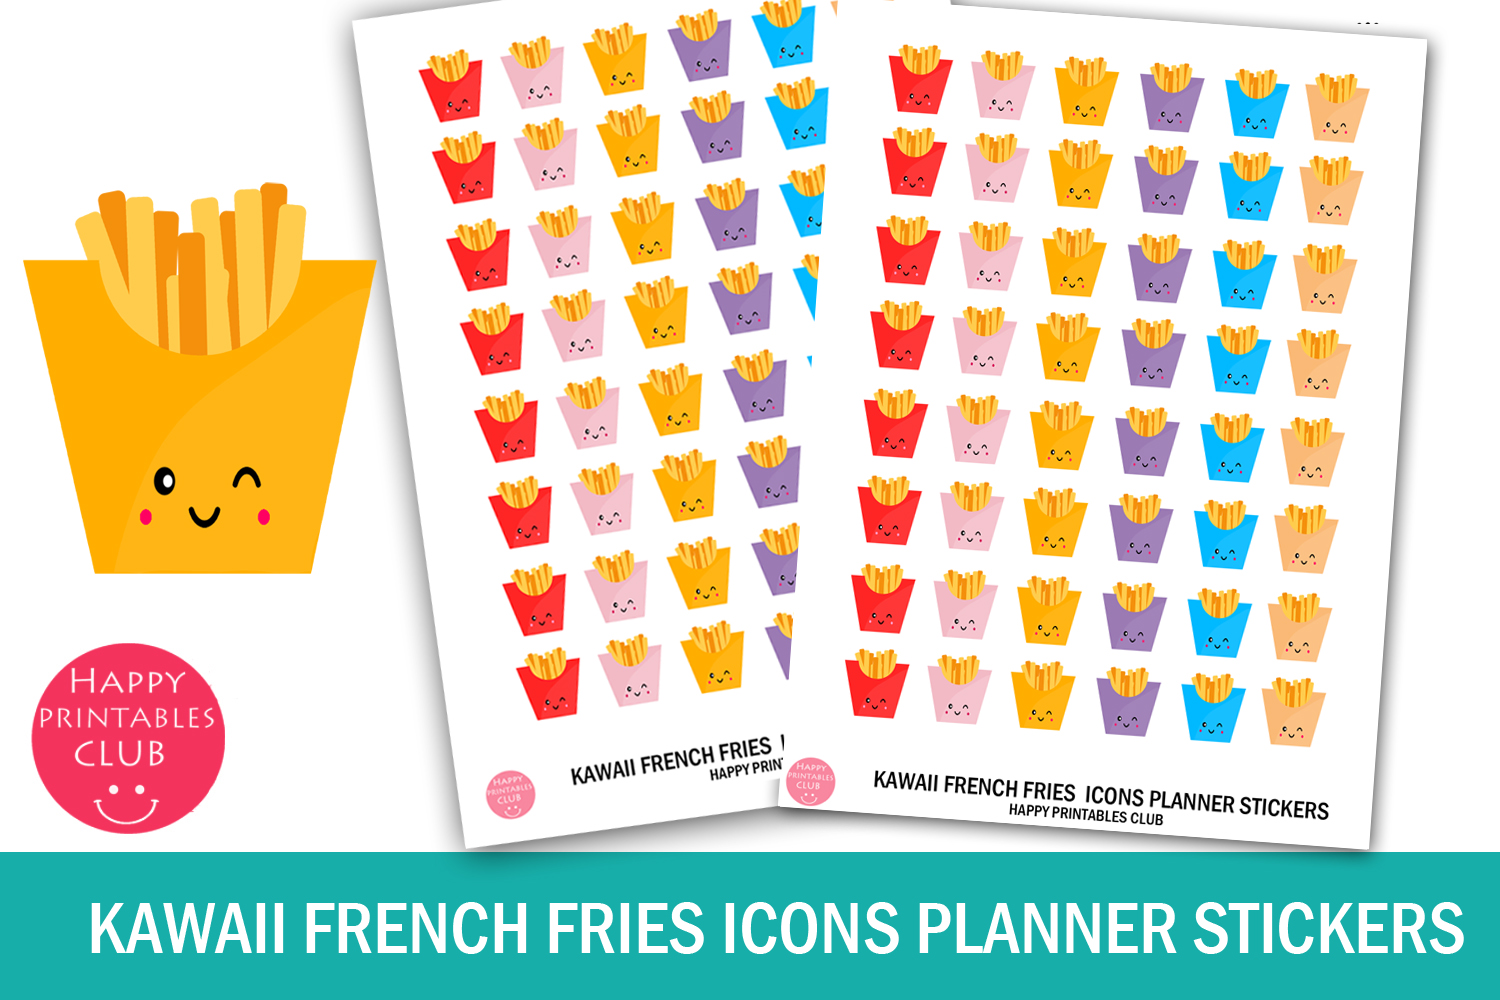 Download Free Kawaii French Fries Icons Stickers Graphic By Happy Printables for Cricut Explore, Silhouette and other cutting machines.